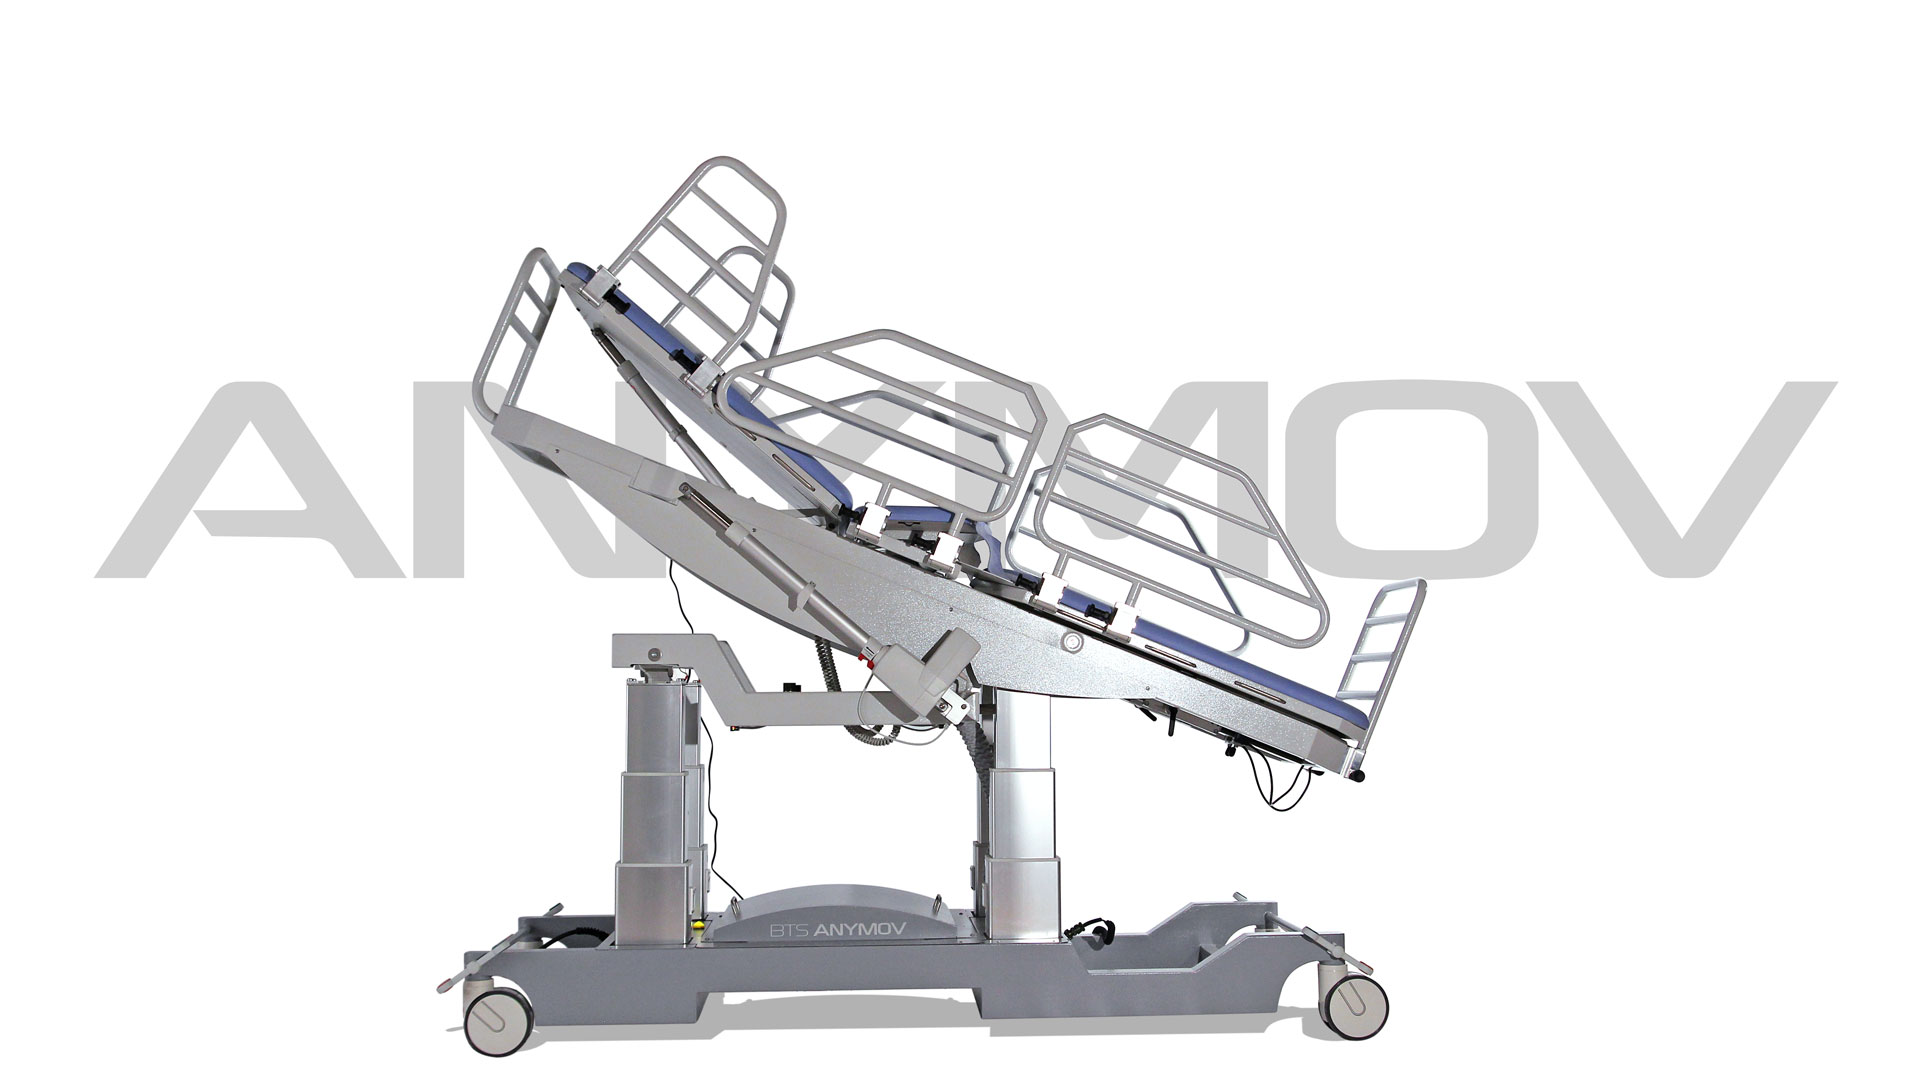 BTS ANYMOV rehabilitation bed